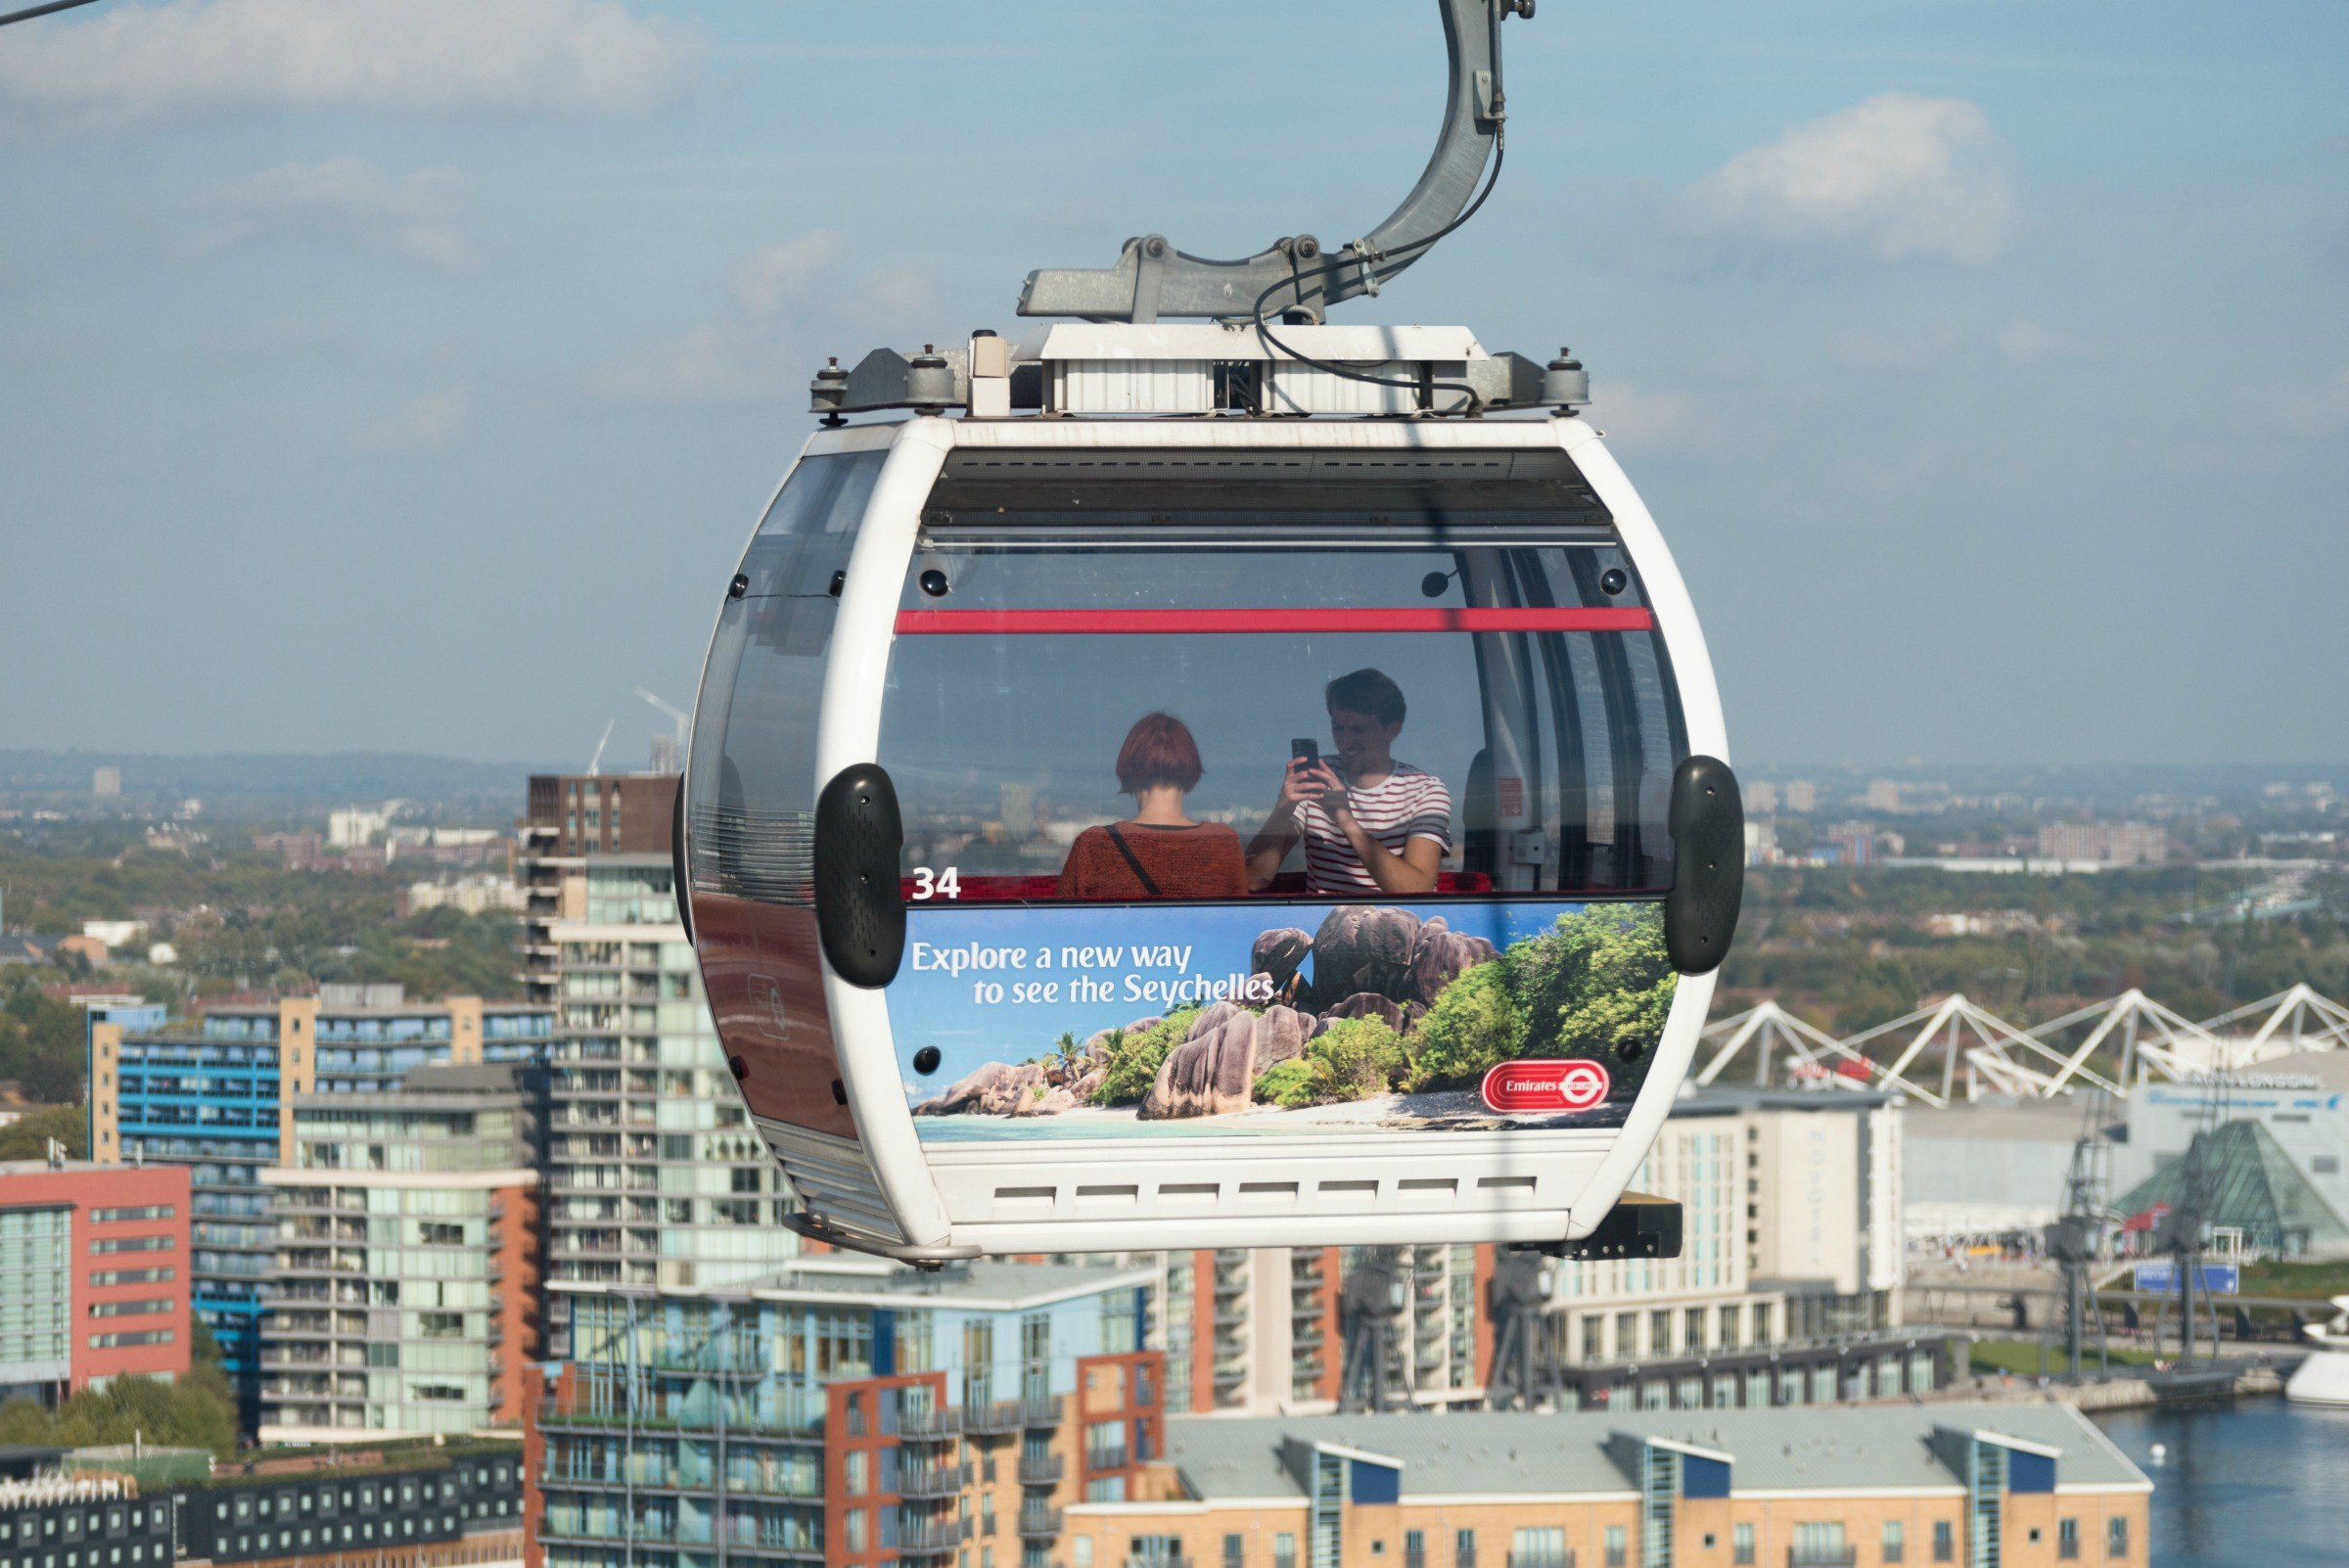 The Emirates Cable Car